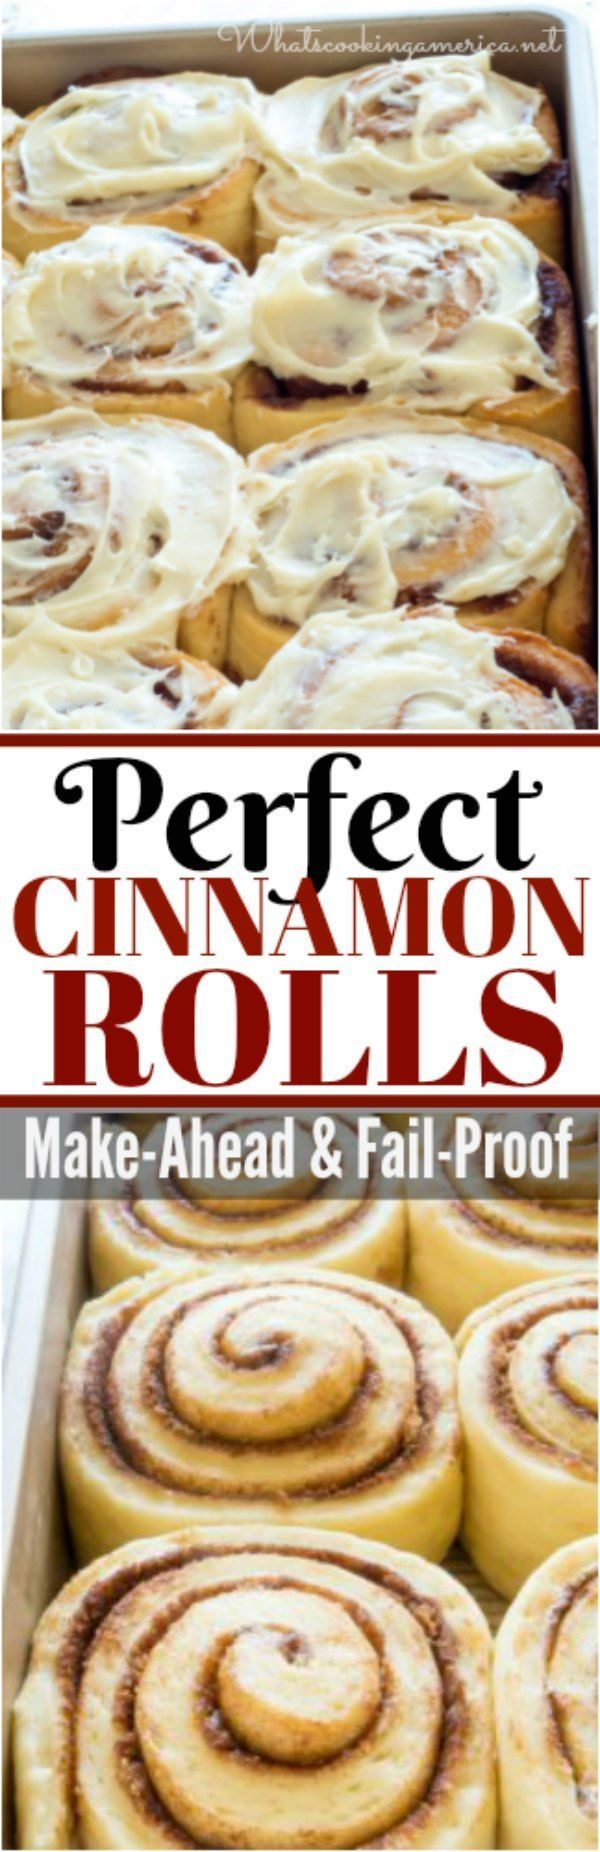 Taste better than Cinnabon!  A fail-proof recipe that you can make-ahead!  #cinnamon #rolls #christmas #thanksgiving #cinnabon